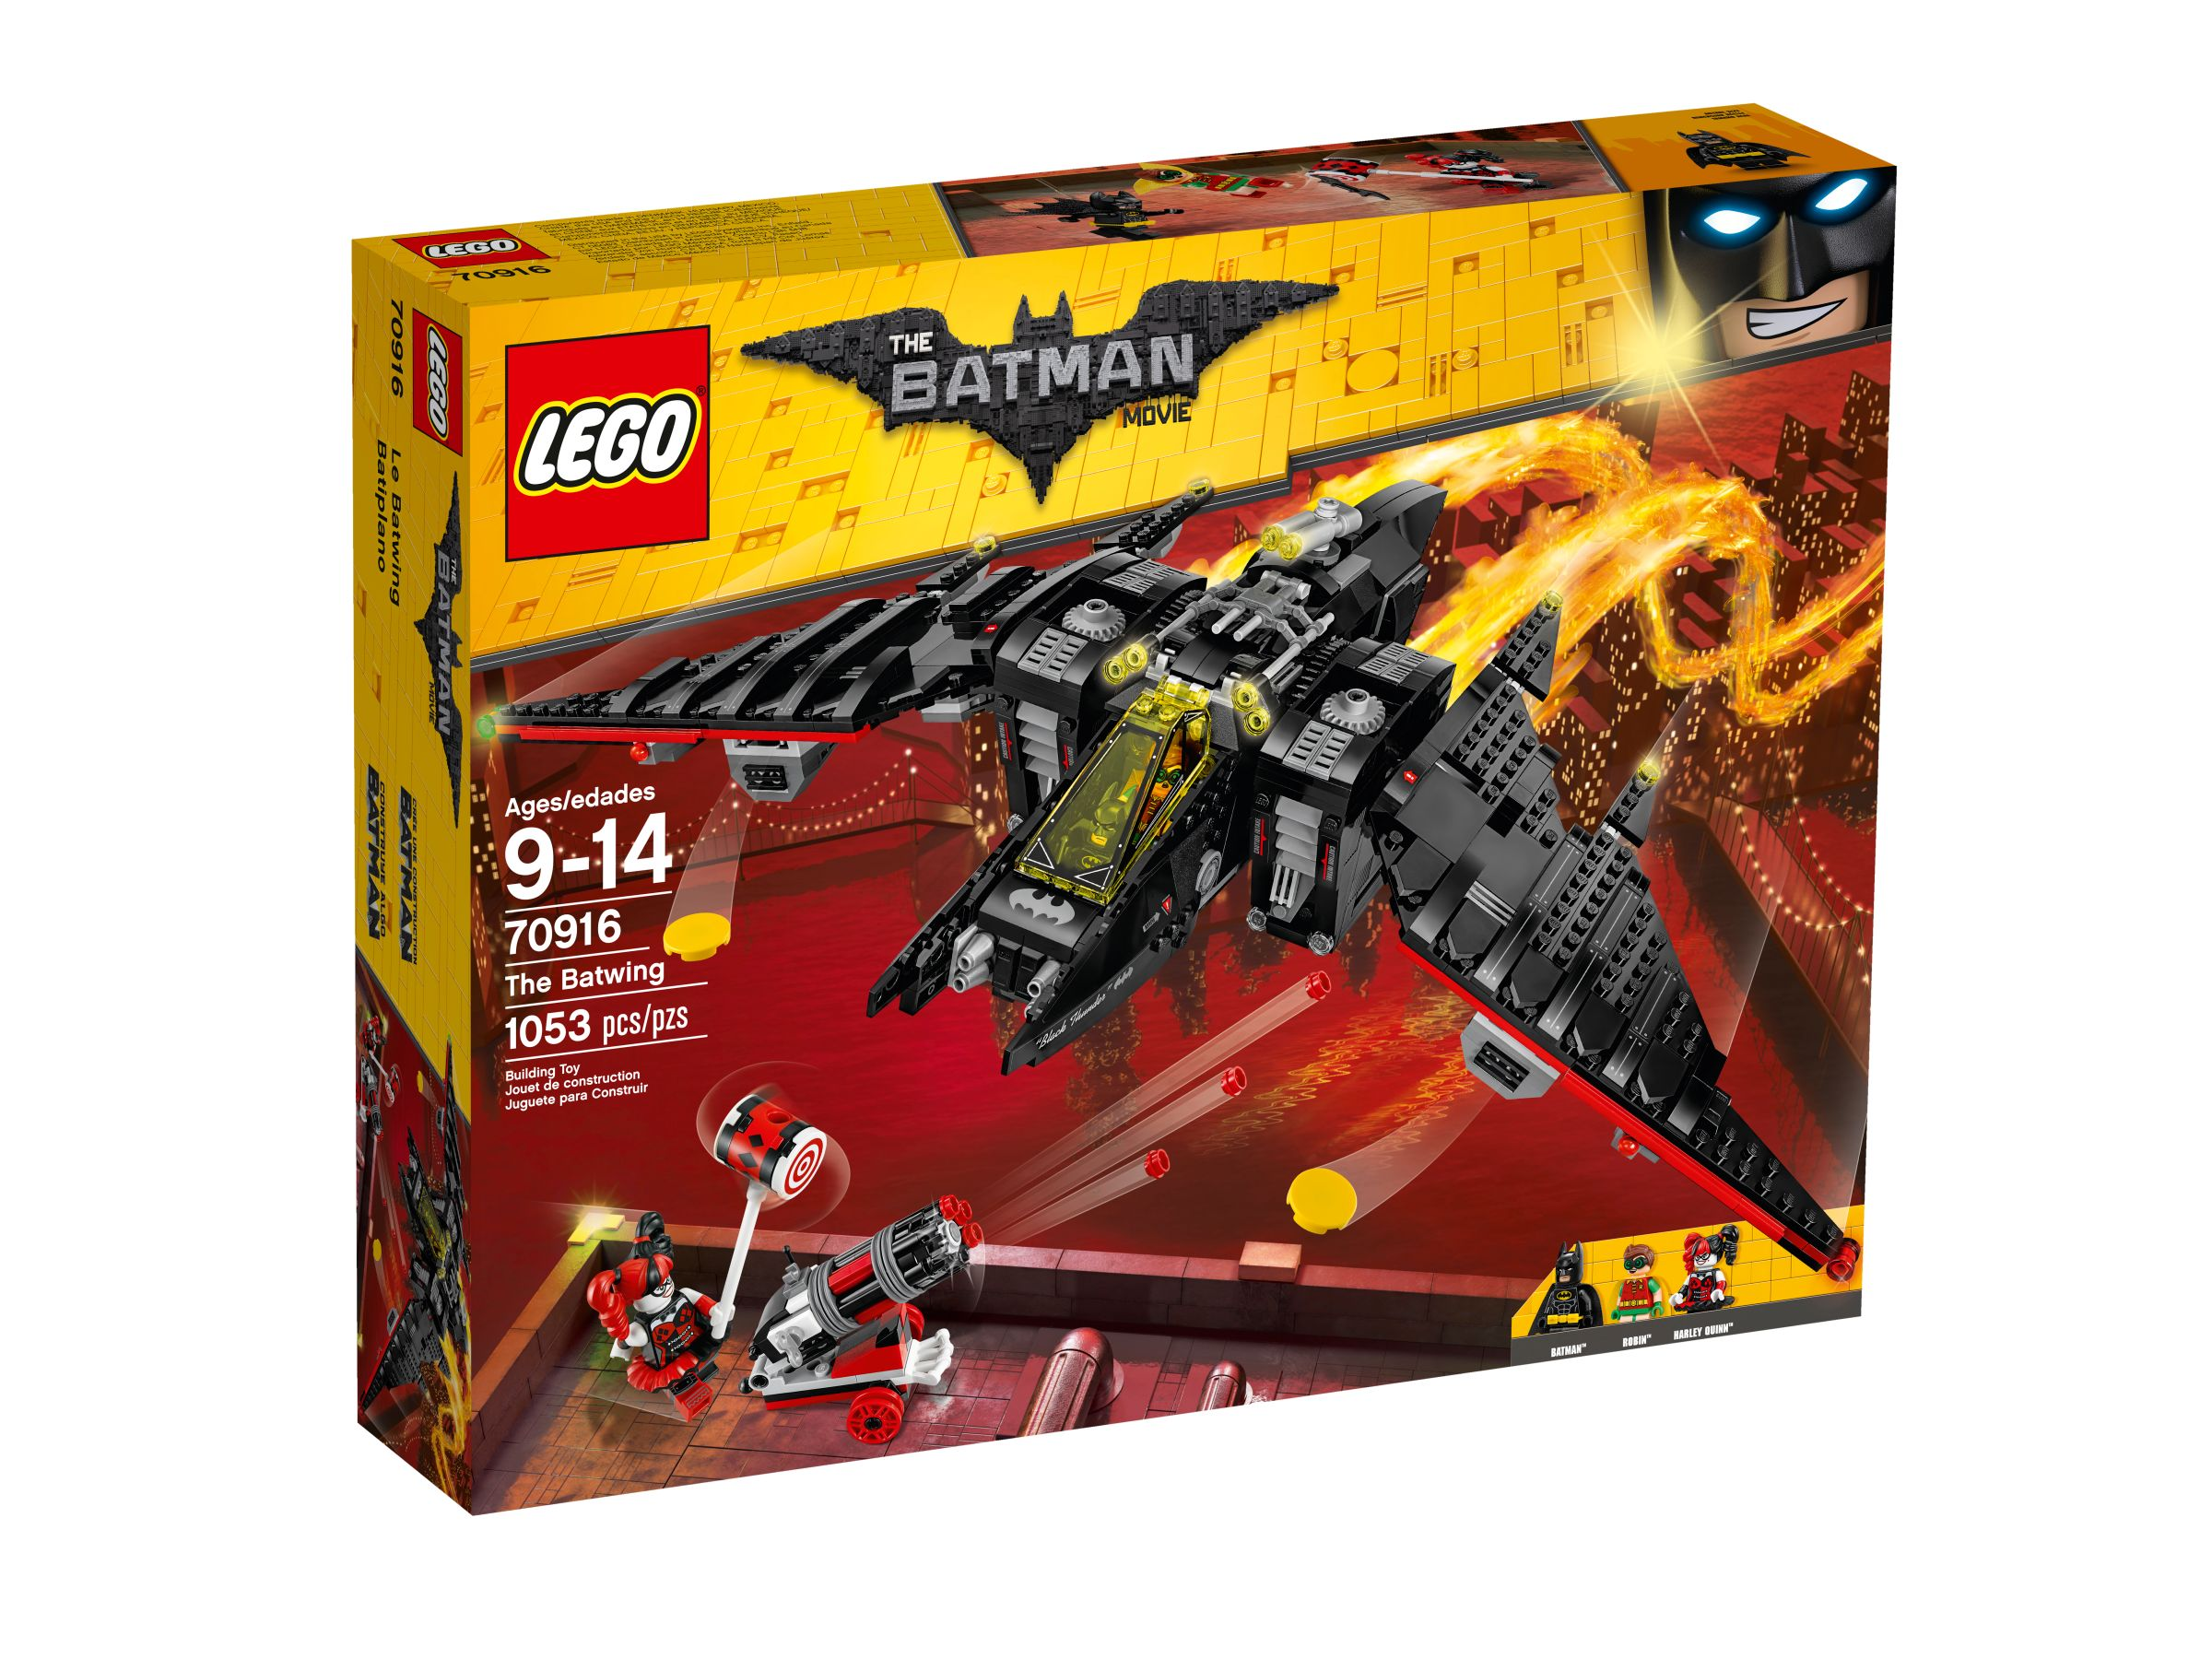 LEGO The LEGO Batman Movie 70916 Batwing LEGO_70916_alt1.jpg